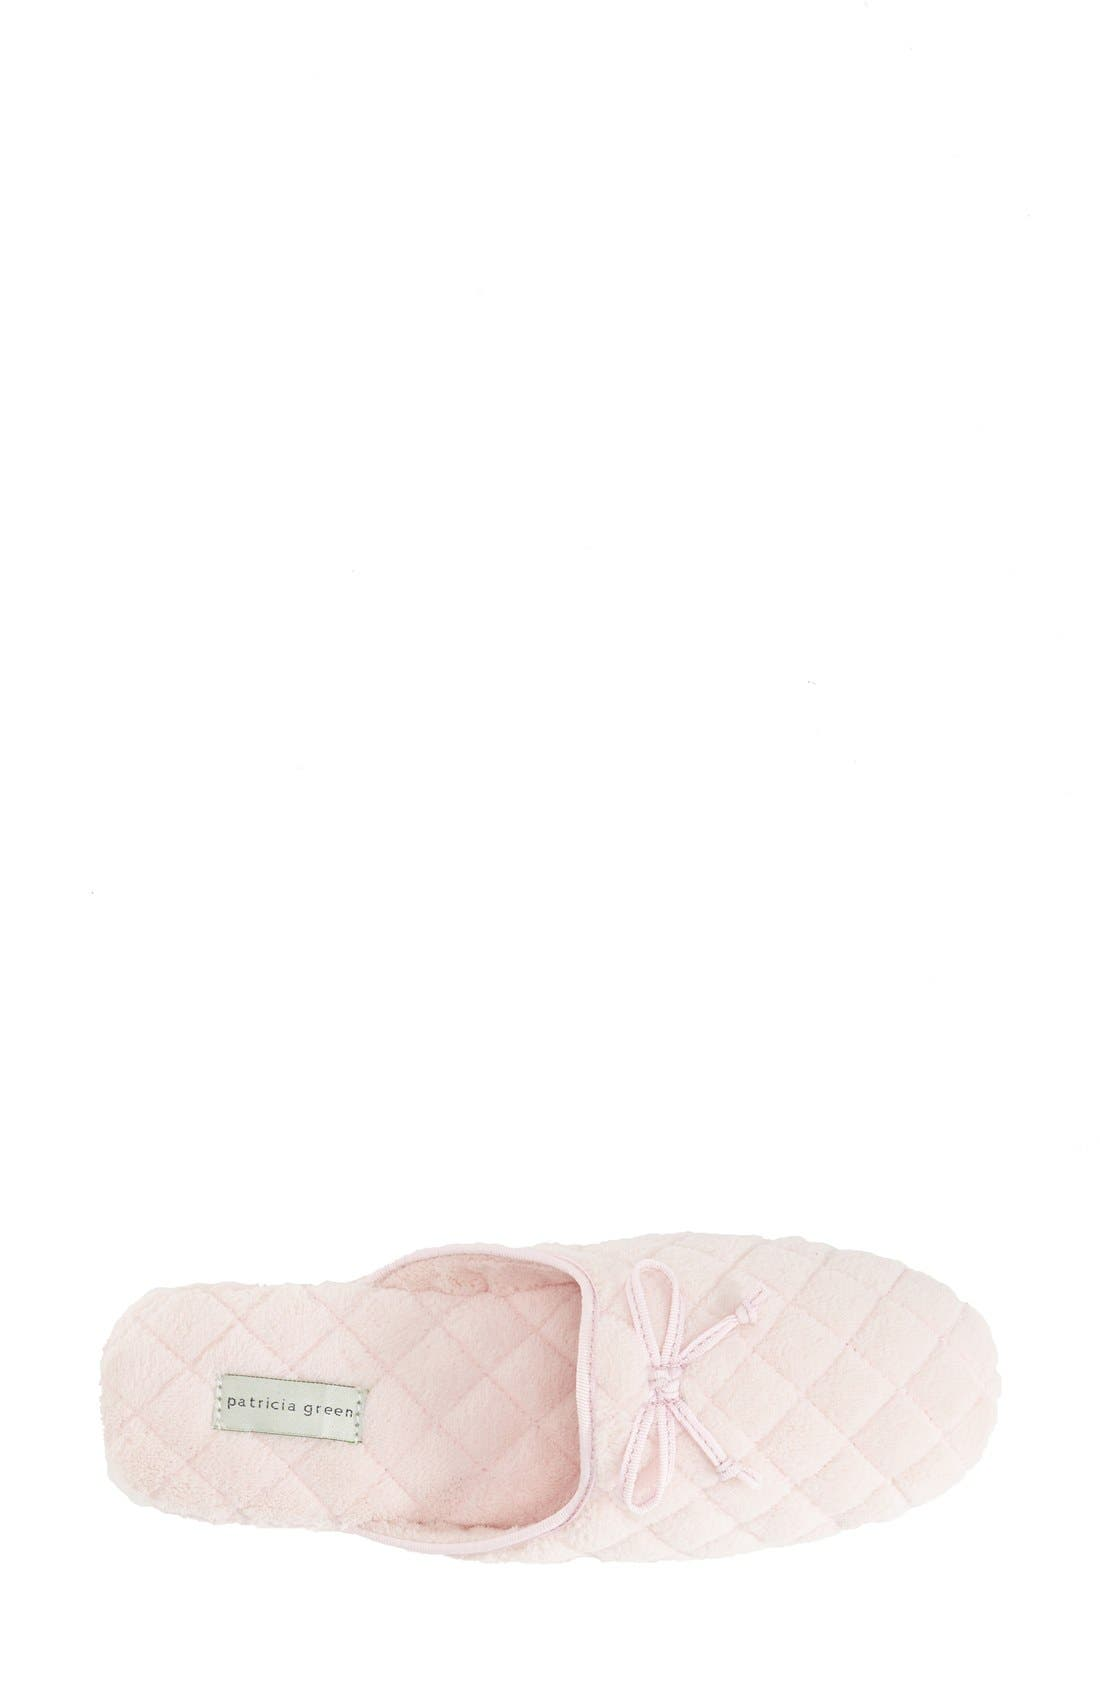 patricia green Chloe Slipper,                             Alternate thumbnail 3, color,                             PINK